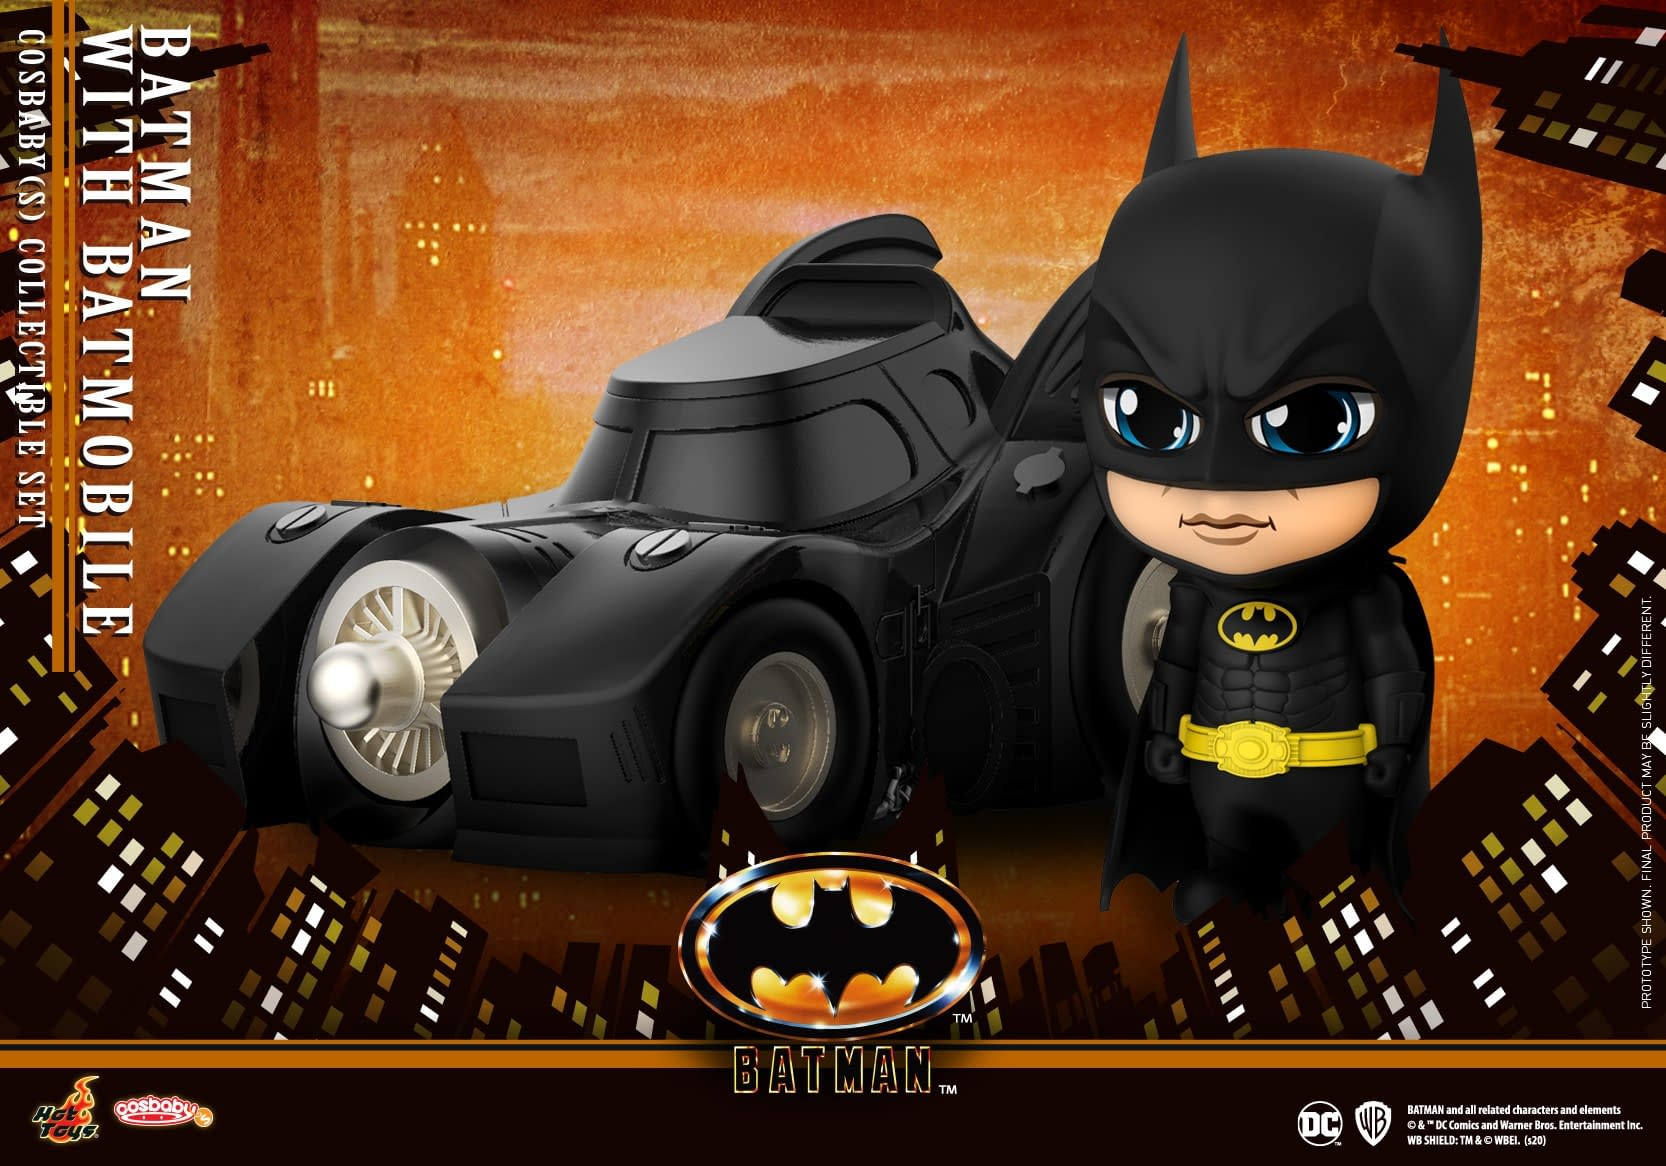 Batman 1989 Gets Adorable with New Cosbaby Figures From Hot Toys